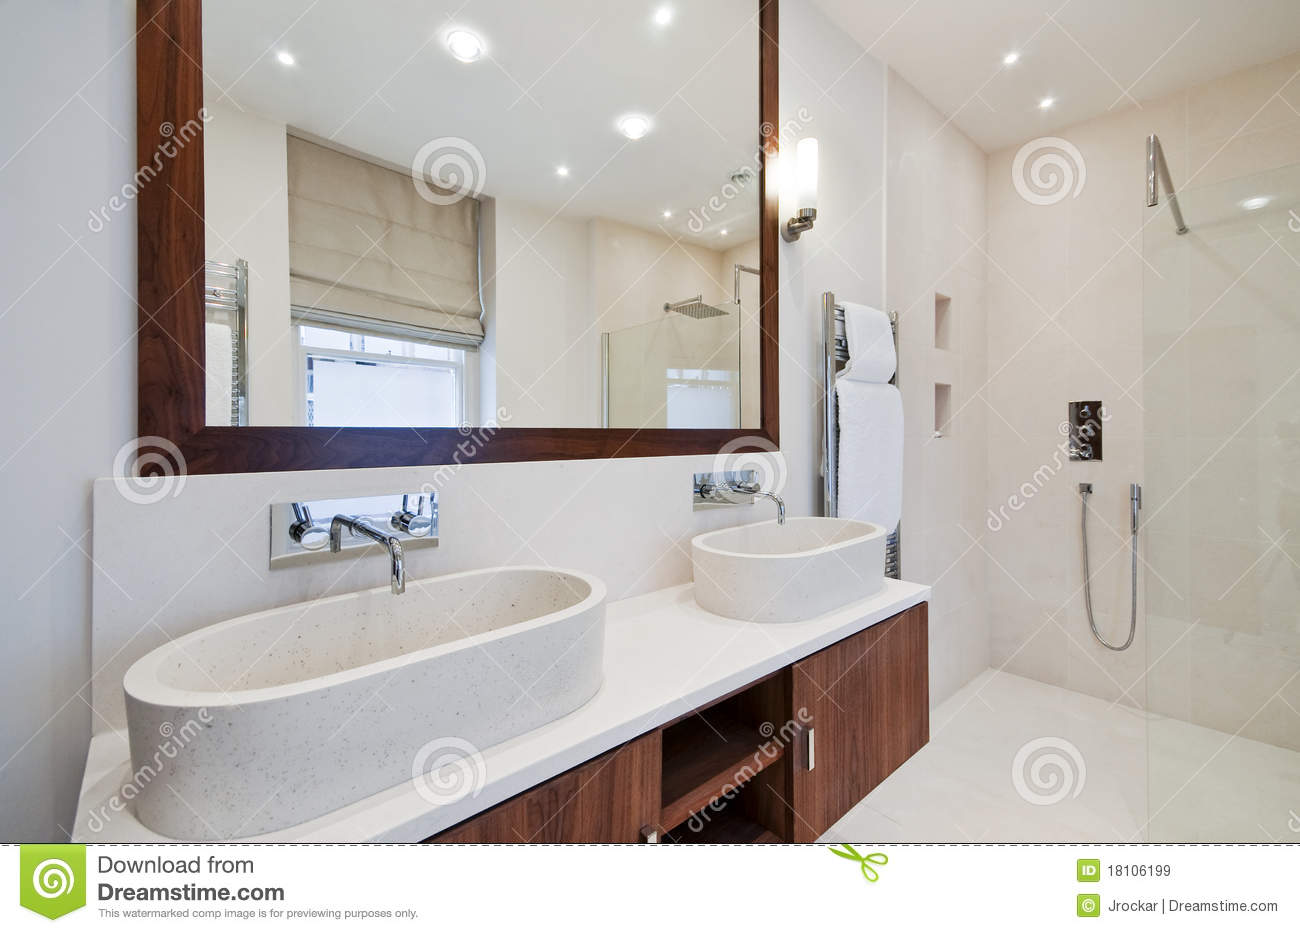 Bath Tap With Shower Attachment Bathroom With Double Hand Wash Basin Royalty Free Stock